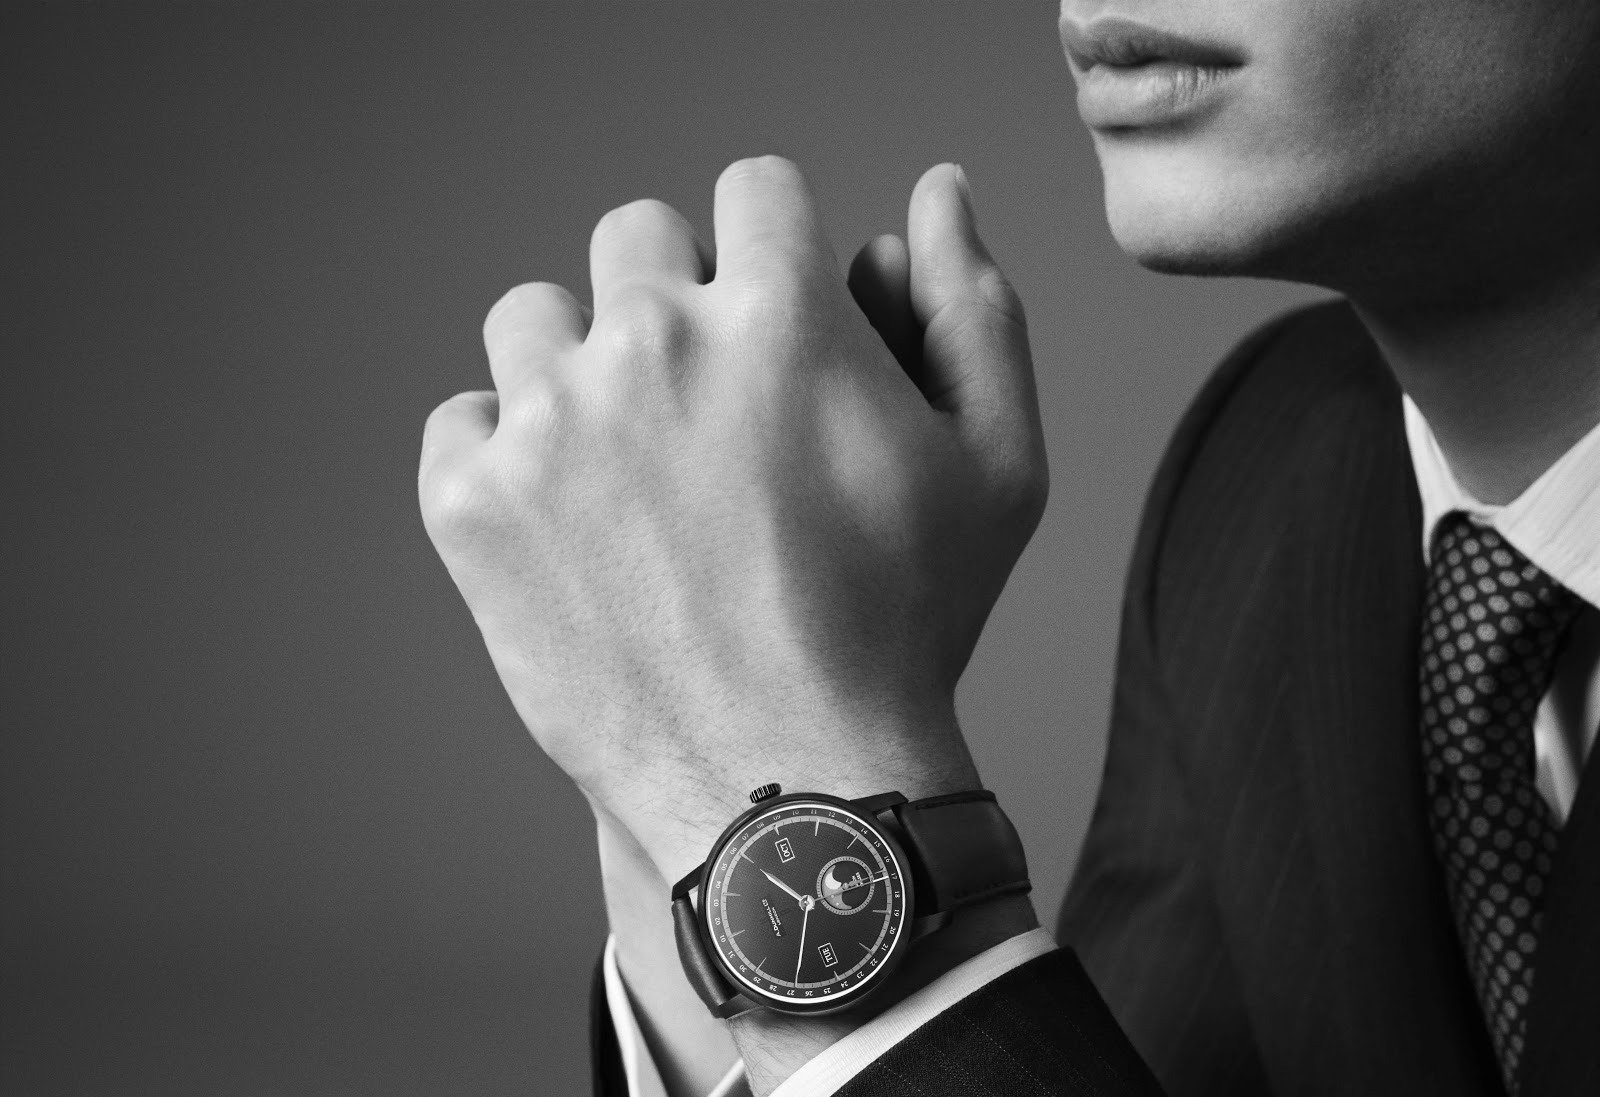 Wearing an expensive watch has more perks than you can imagine – a journalist finds out -